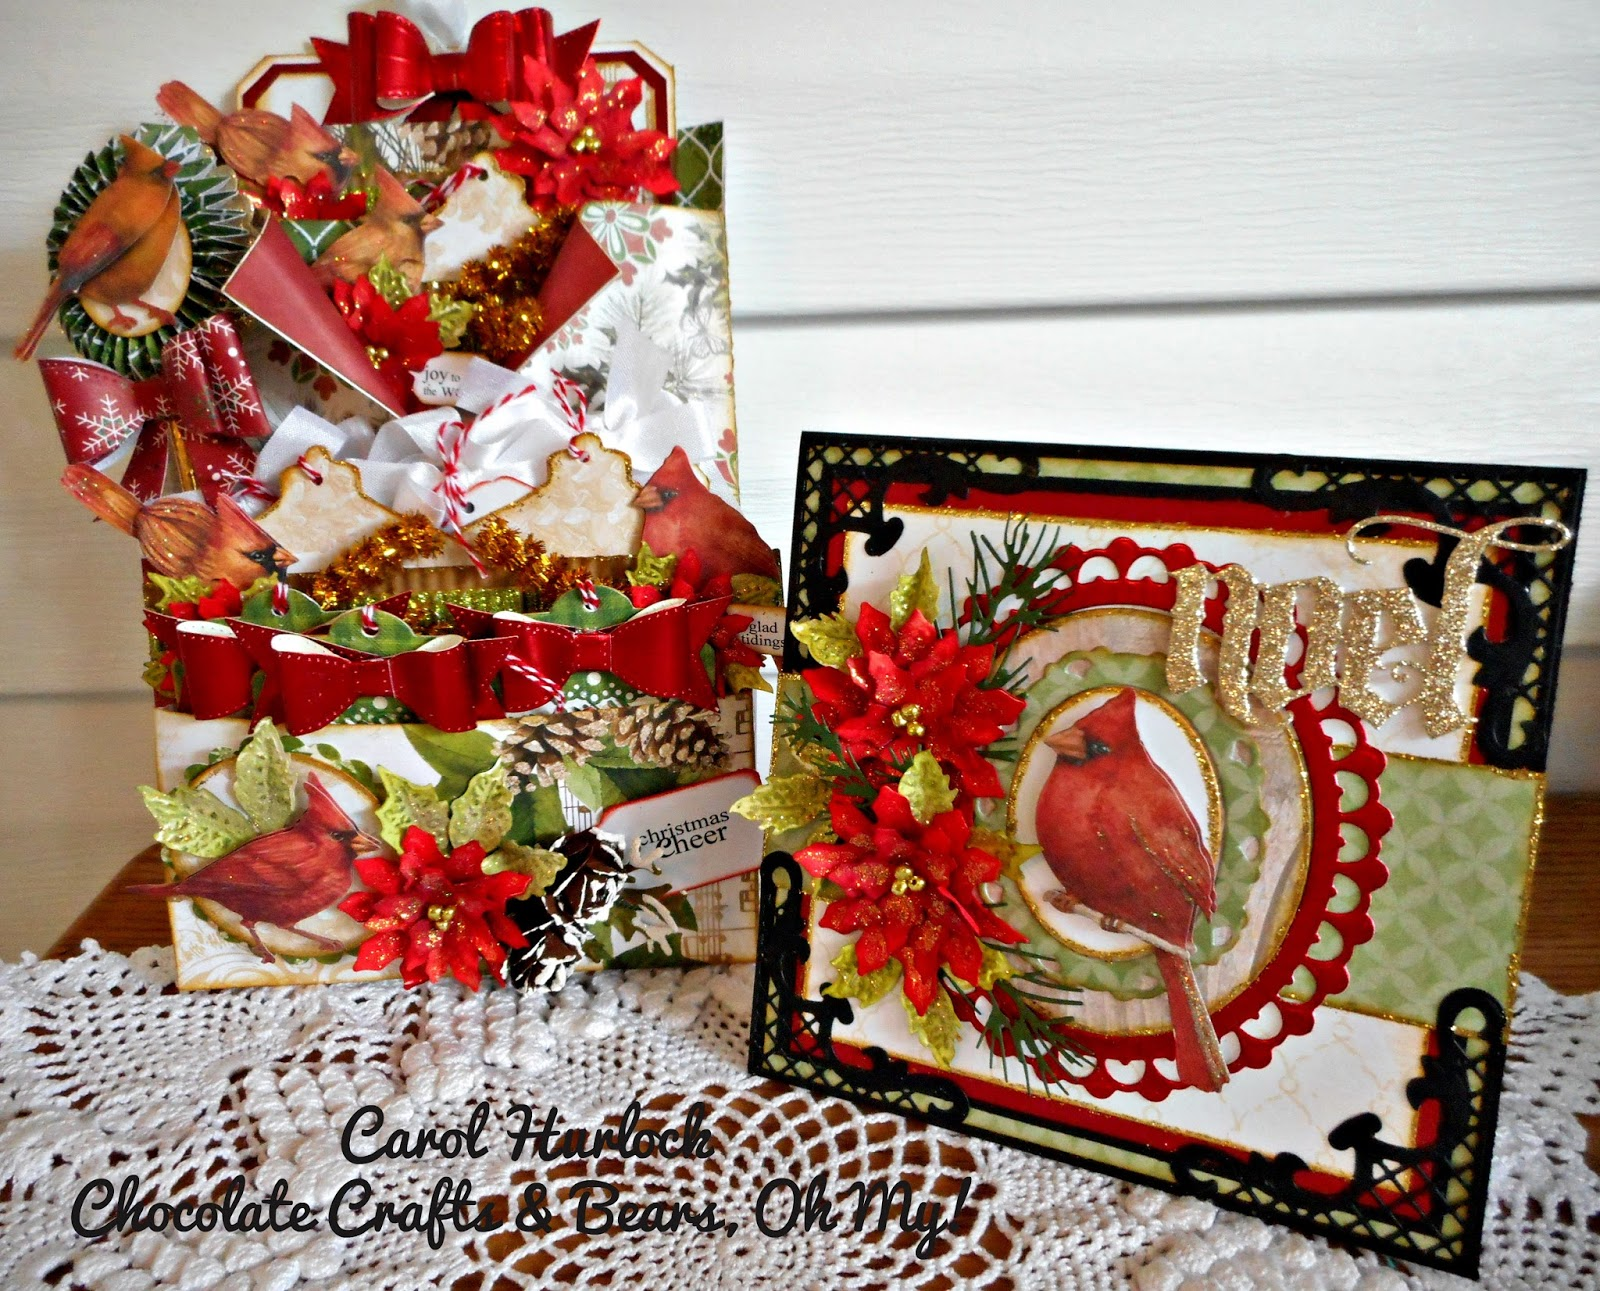 Chocolate Crafts And Bears Oh My Cardinal Themed Loaded Envelope